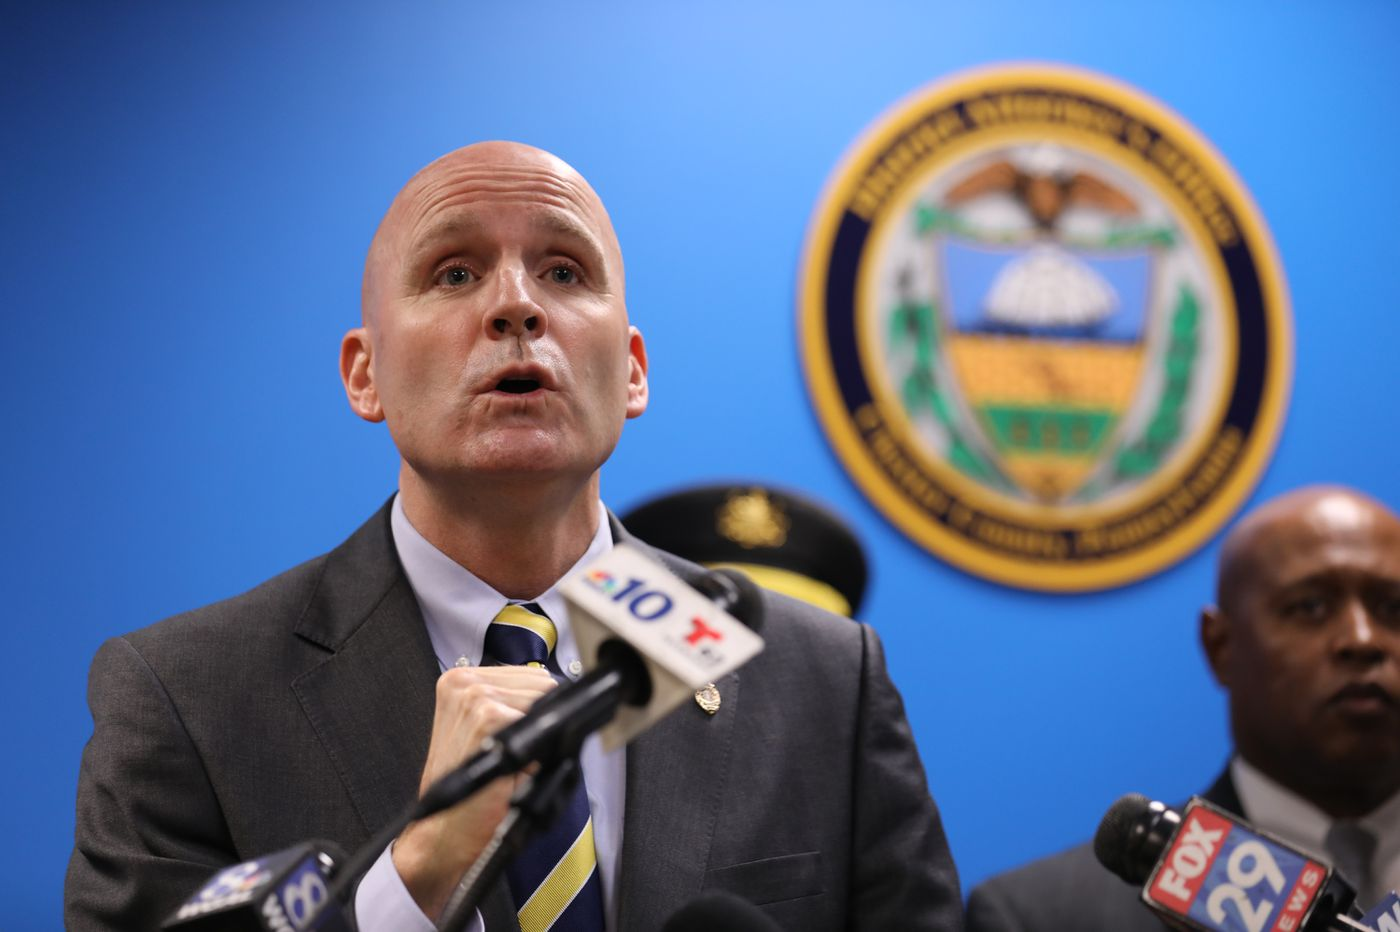 Chesco DA, state police union push for resolution of suit over 'do not use' list